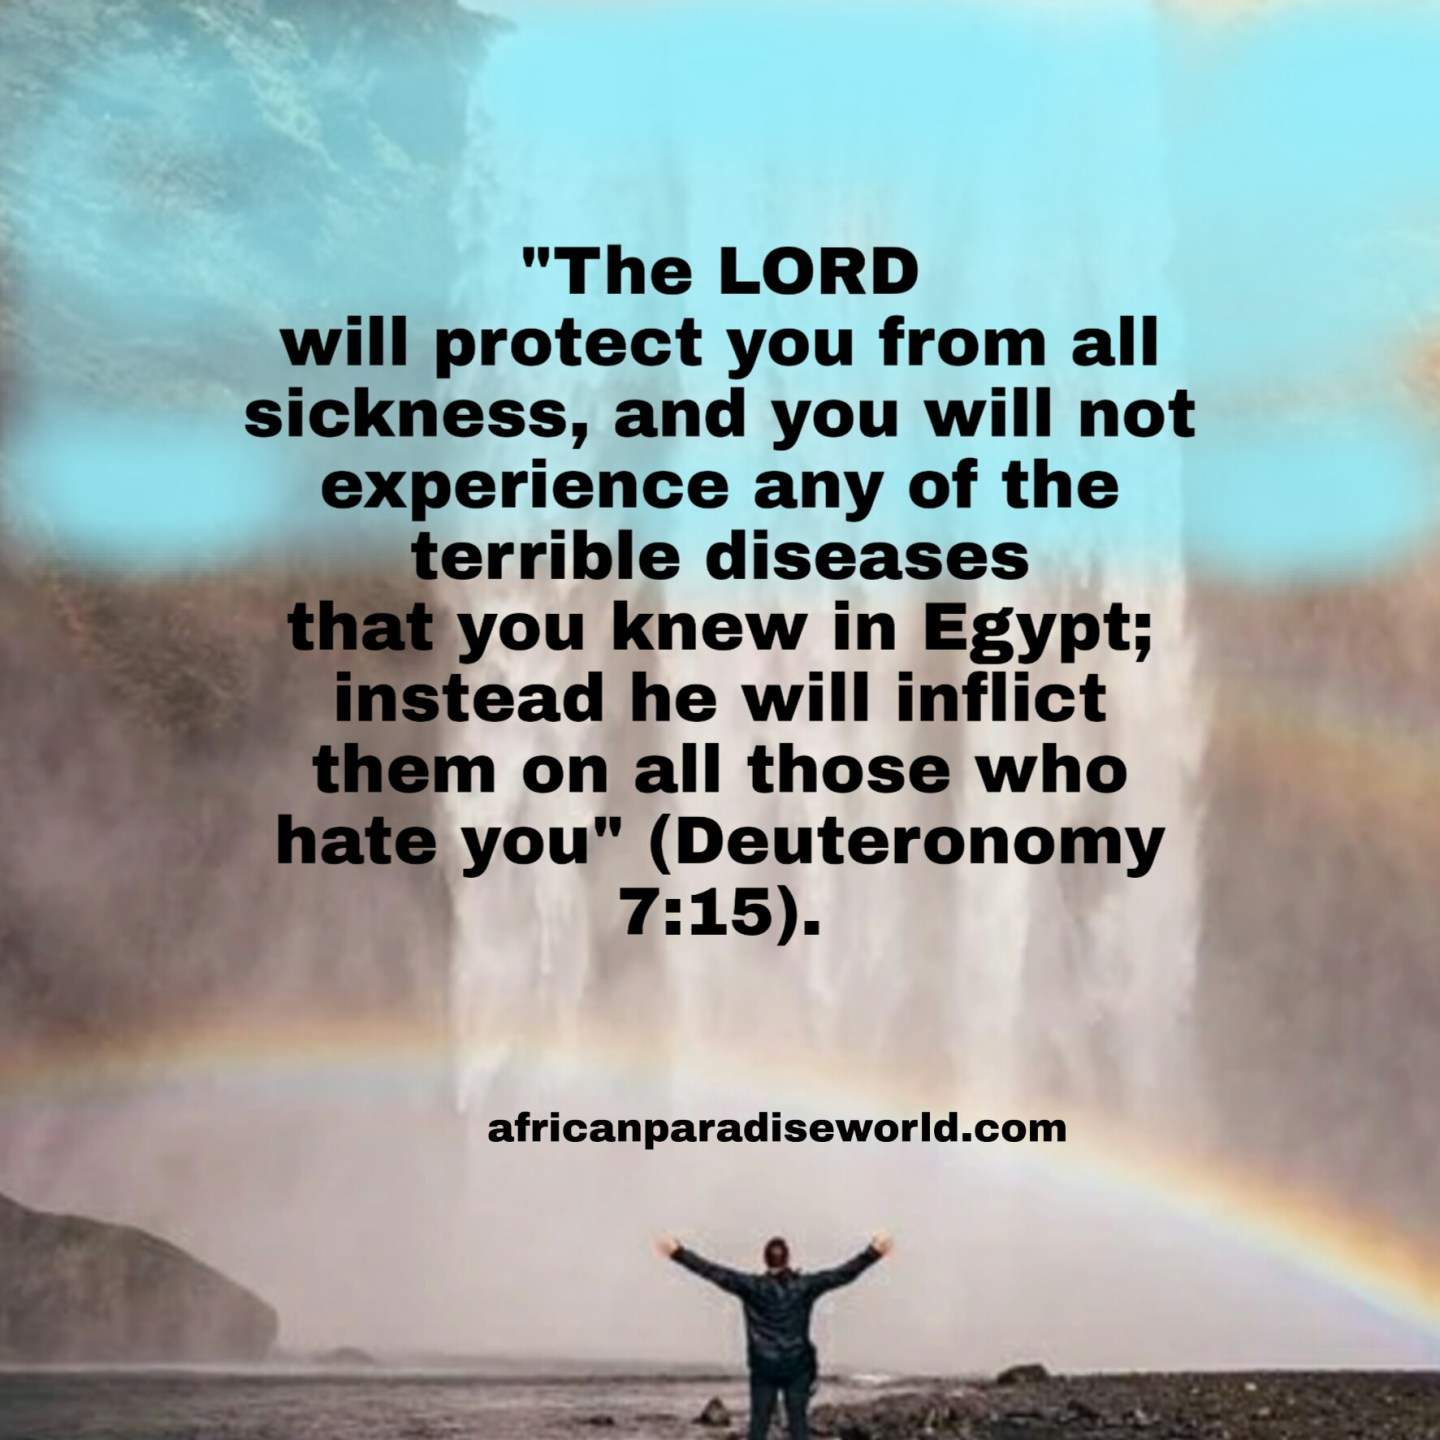 God will protect you against sicknesses verse